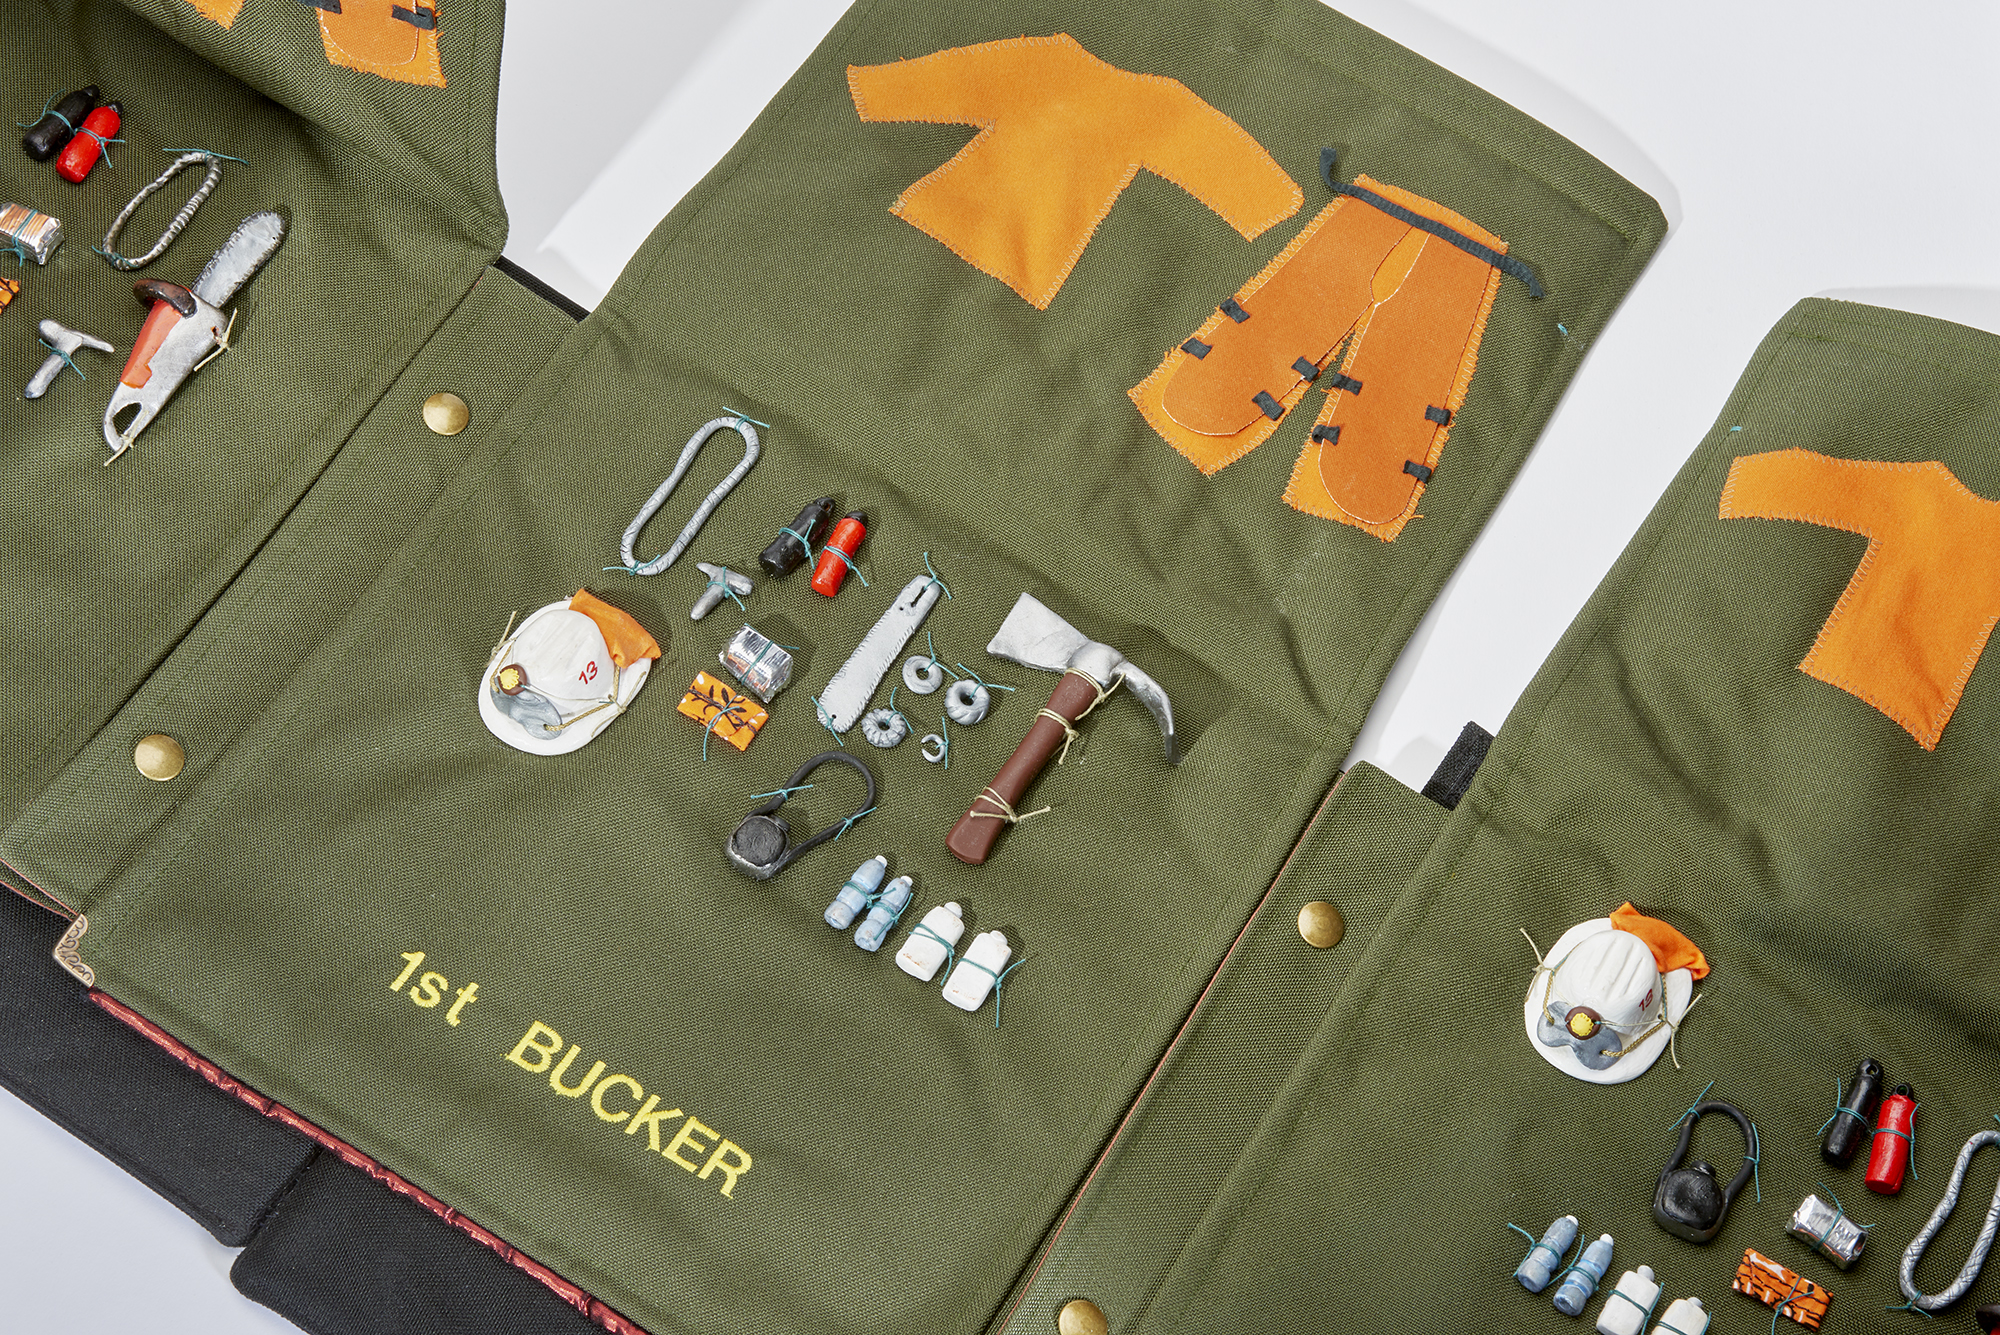 """Kim Abeles and the Firefighting Women of Camp 13 / Valise 2 - Tools from the series, Valises for Camp Ground: Arts, Corrections, and Fire Management in the Santa Monica Mountains 2018 Hand constructed """"backpack"""" valise made with Cordura, Velvet, Clay miniatures of firefighting tools, Embroidered names of each position on a fire crew, brass hardware  Size: Closed: 23"""" x 10"""" x 14""""   Open: 10"""" x 167"""" x 22"""" This inaugural Camp Ground project with inmates from Camp 13 was managed by the Armory Center for the Arts, with Kim Abeles as the first commissioned artist. Camp Ground: Arts, Corrections, and Fire Management in the Santa Monica Mountains is made possible by the National Endowment for the Arts and the Los Angeles County Arts Commission."""